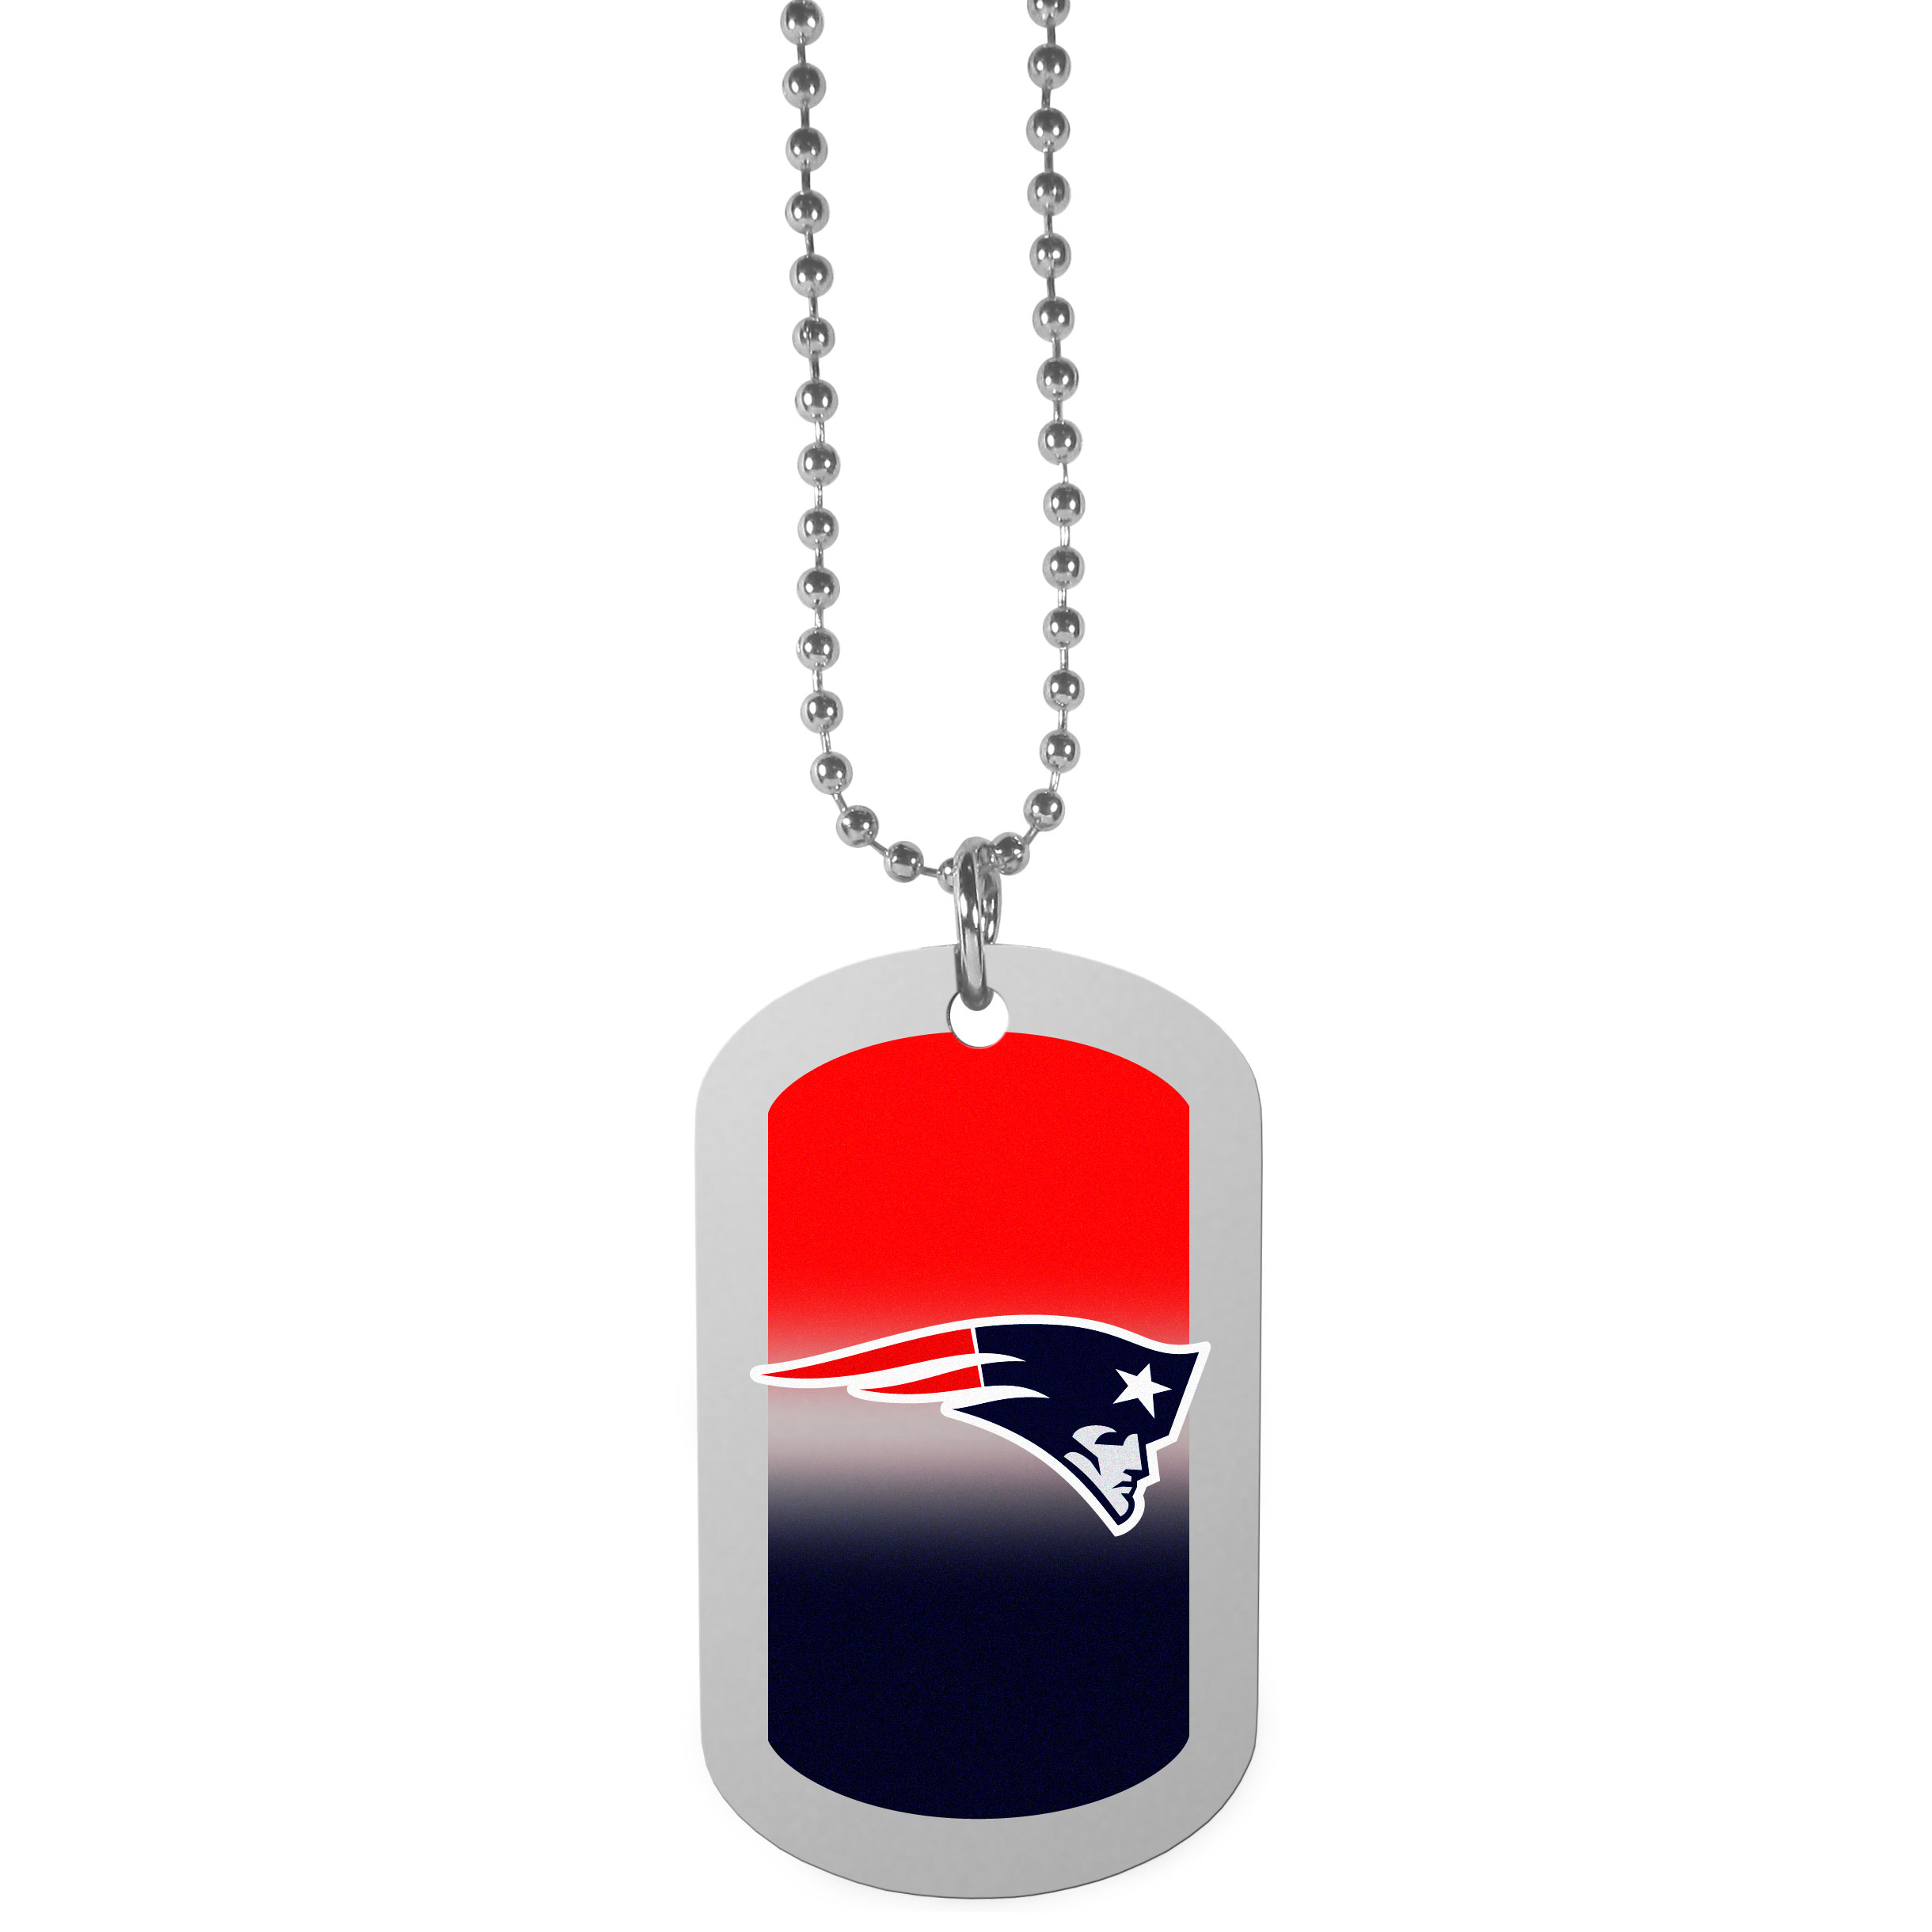 New England Patriots Team Tag Necklace - Dog tag necklaces are a fashion statement that is here to stay. The sporty version of the classic tag features a gradient print in team colors featuring a full color team logo over a high polish tag to create a bold and sporty look. The tag comes on a 26 inch ball chain with a ball and joint clasp. Any New England Patriots would be proud to wear this attractive fashion accessory.